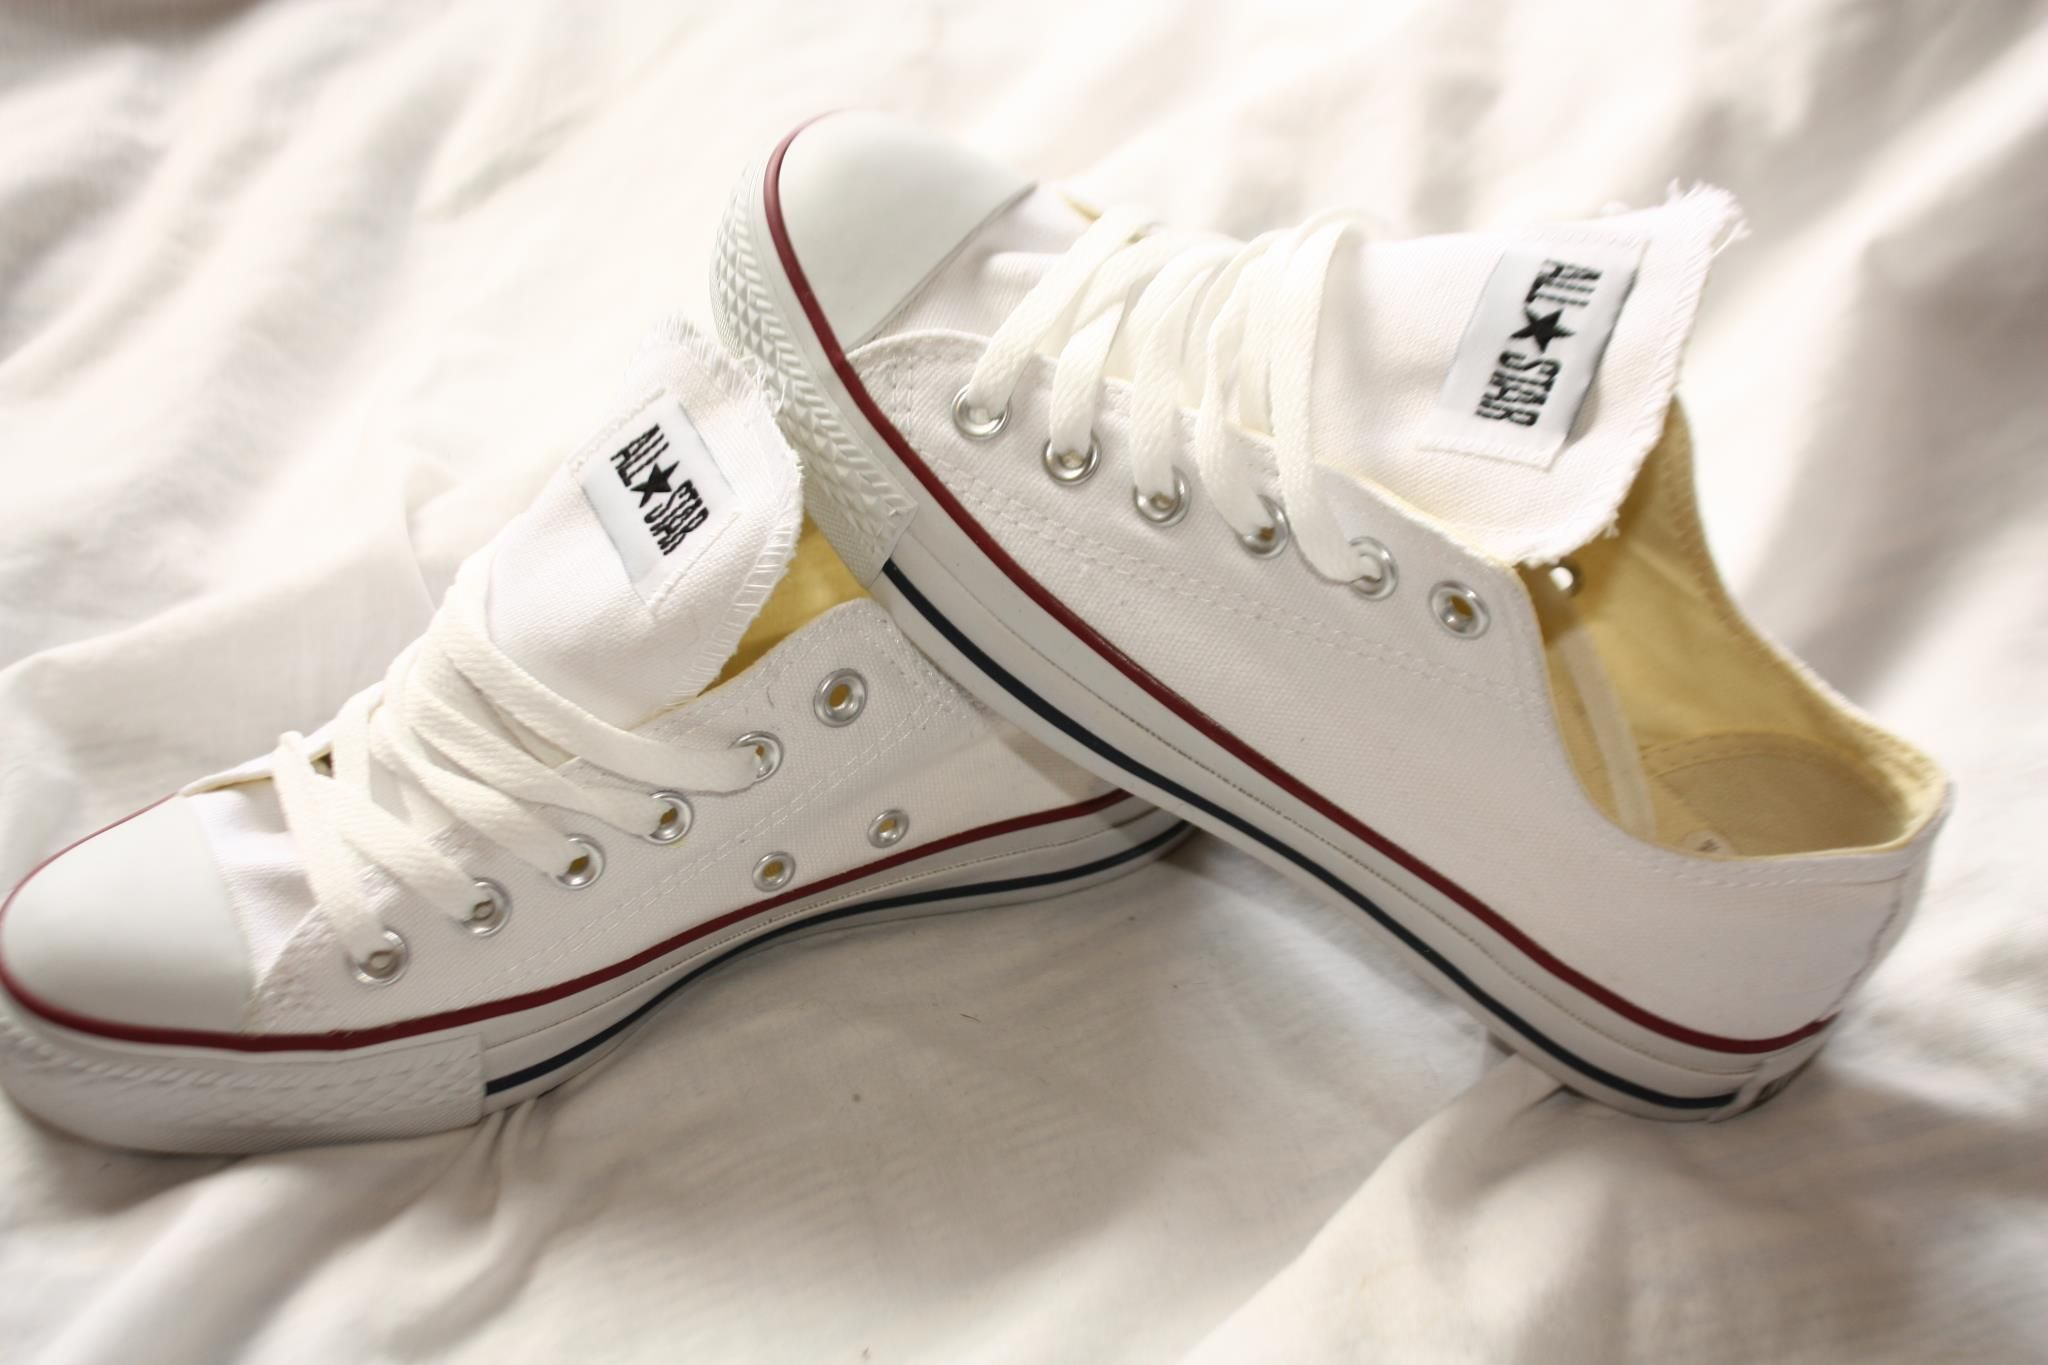 Home | Converse style, Shoe addict, Chuck taylor sneakers